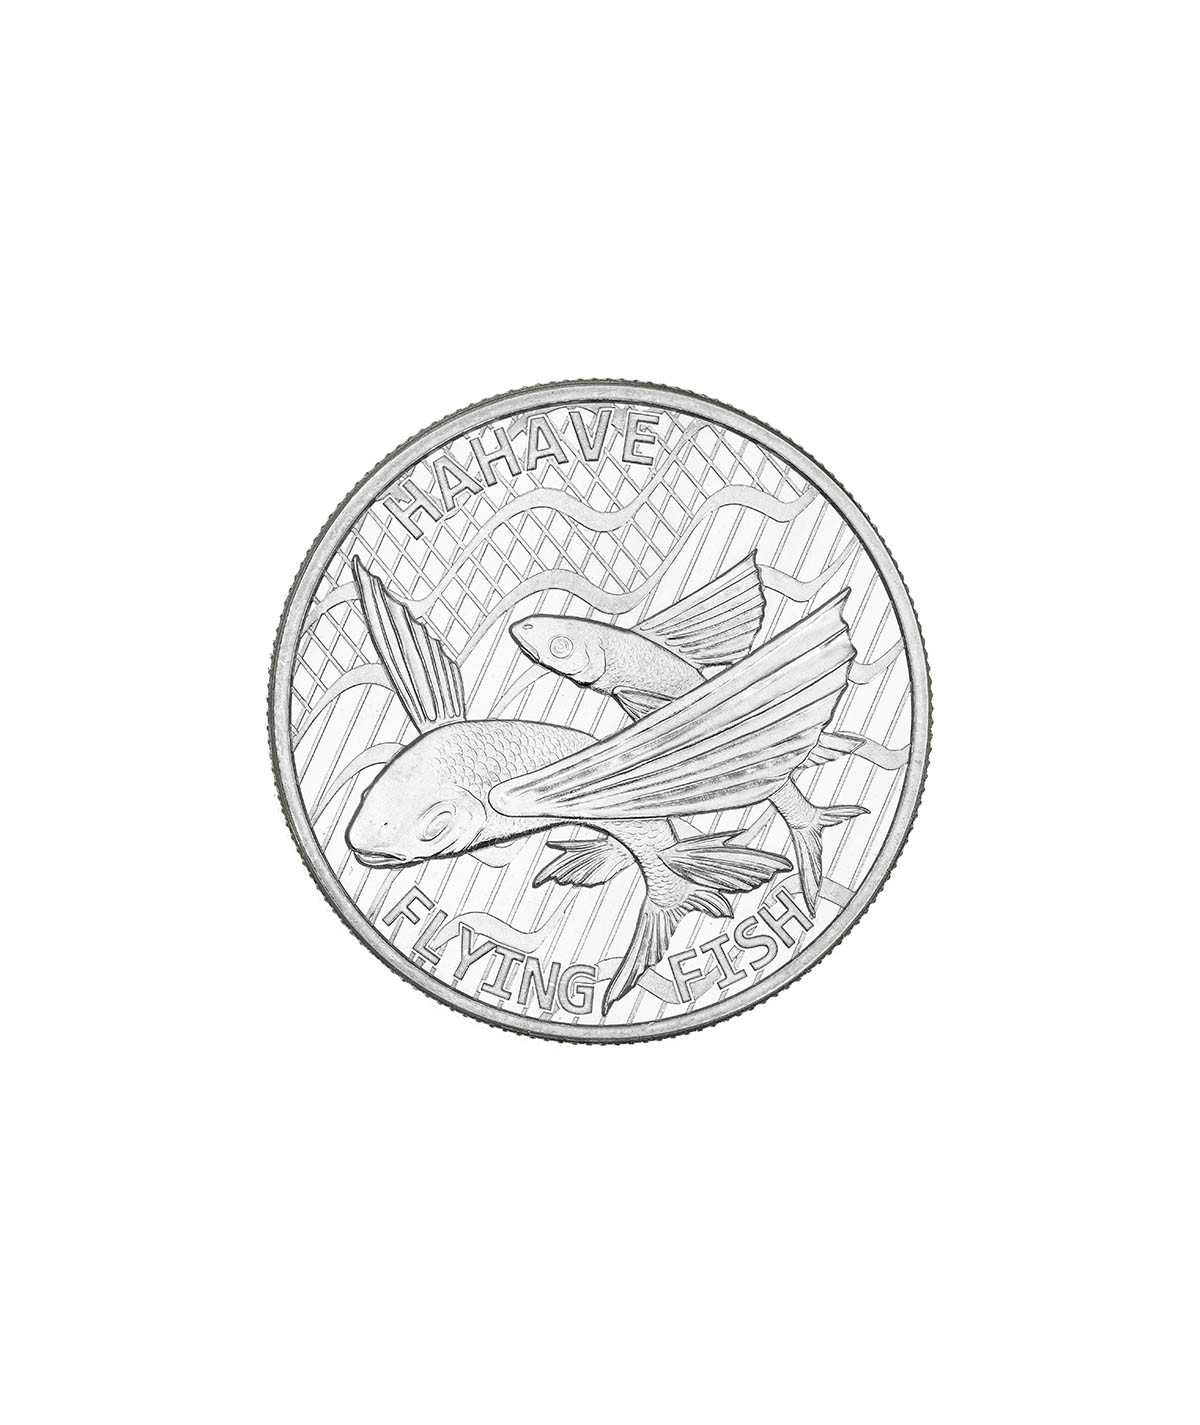 1oz Flying Fish Silver Coin from 2020